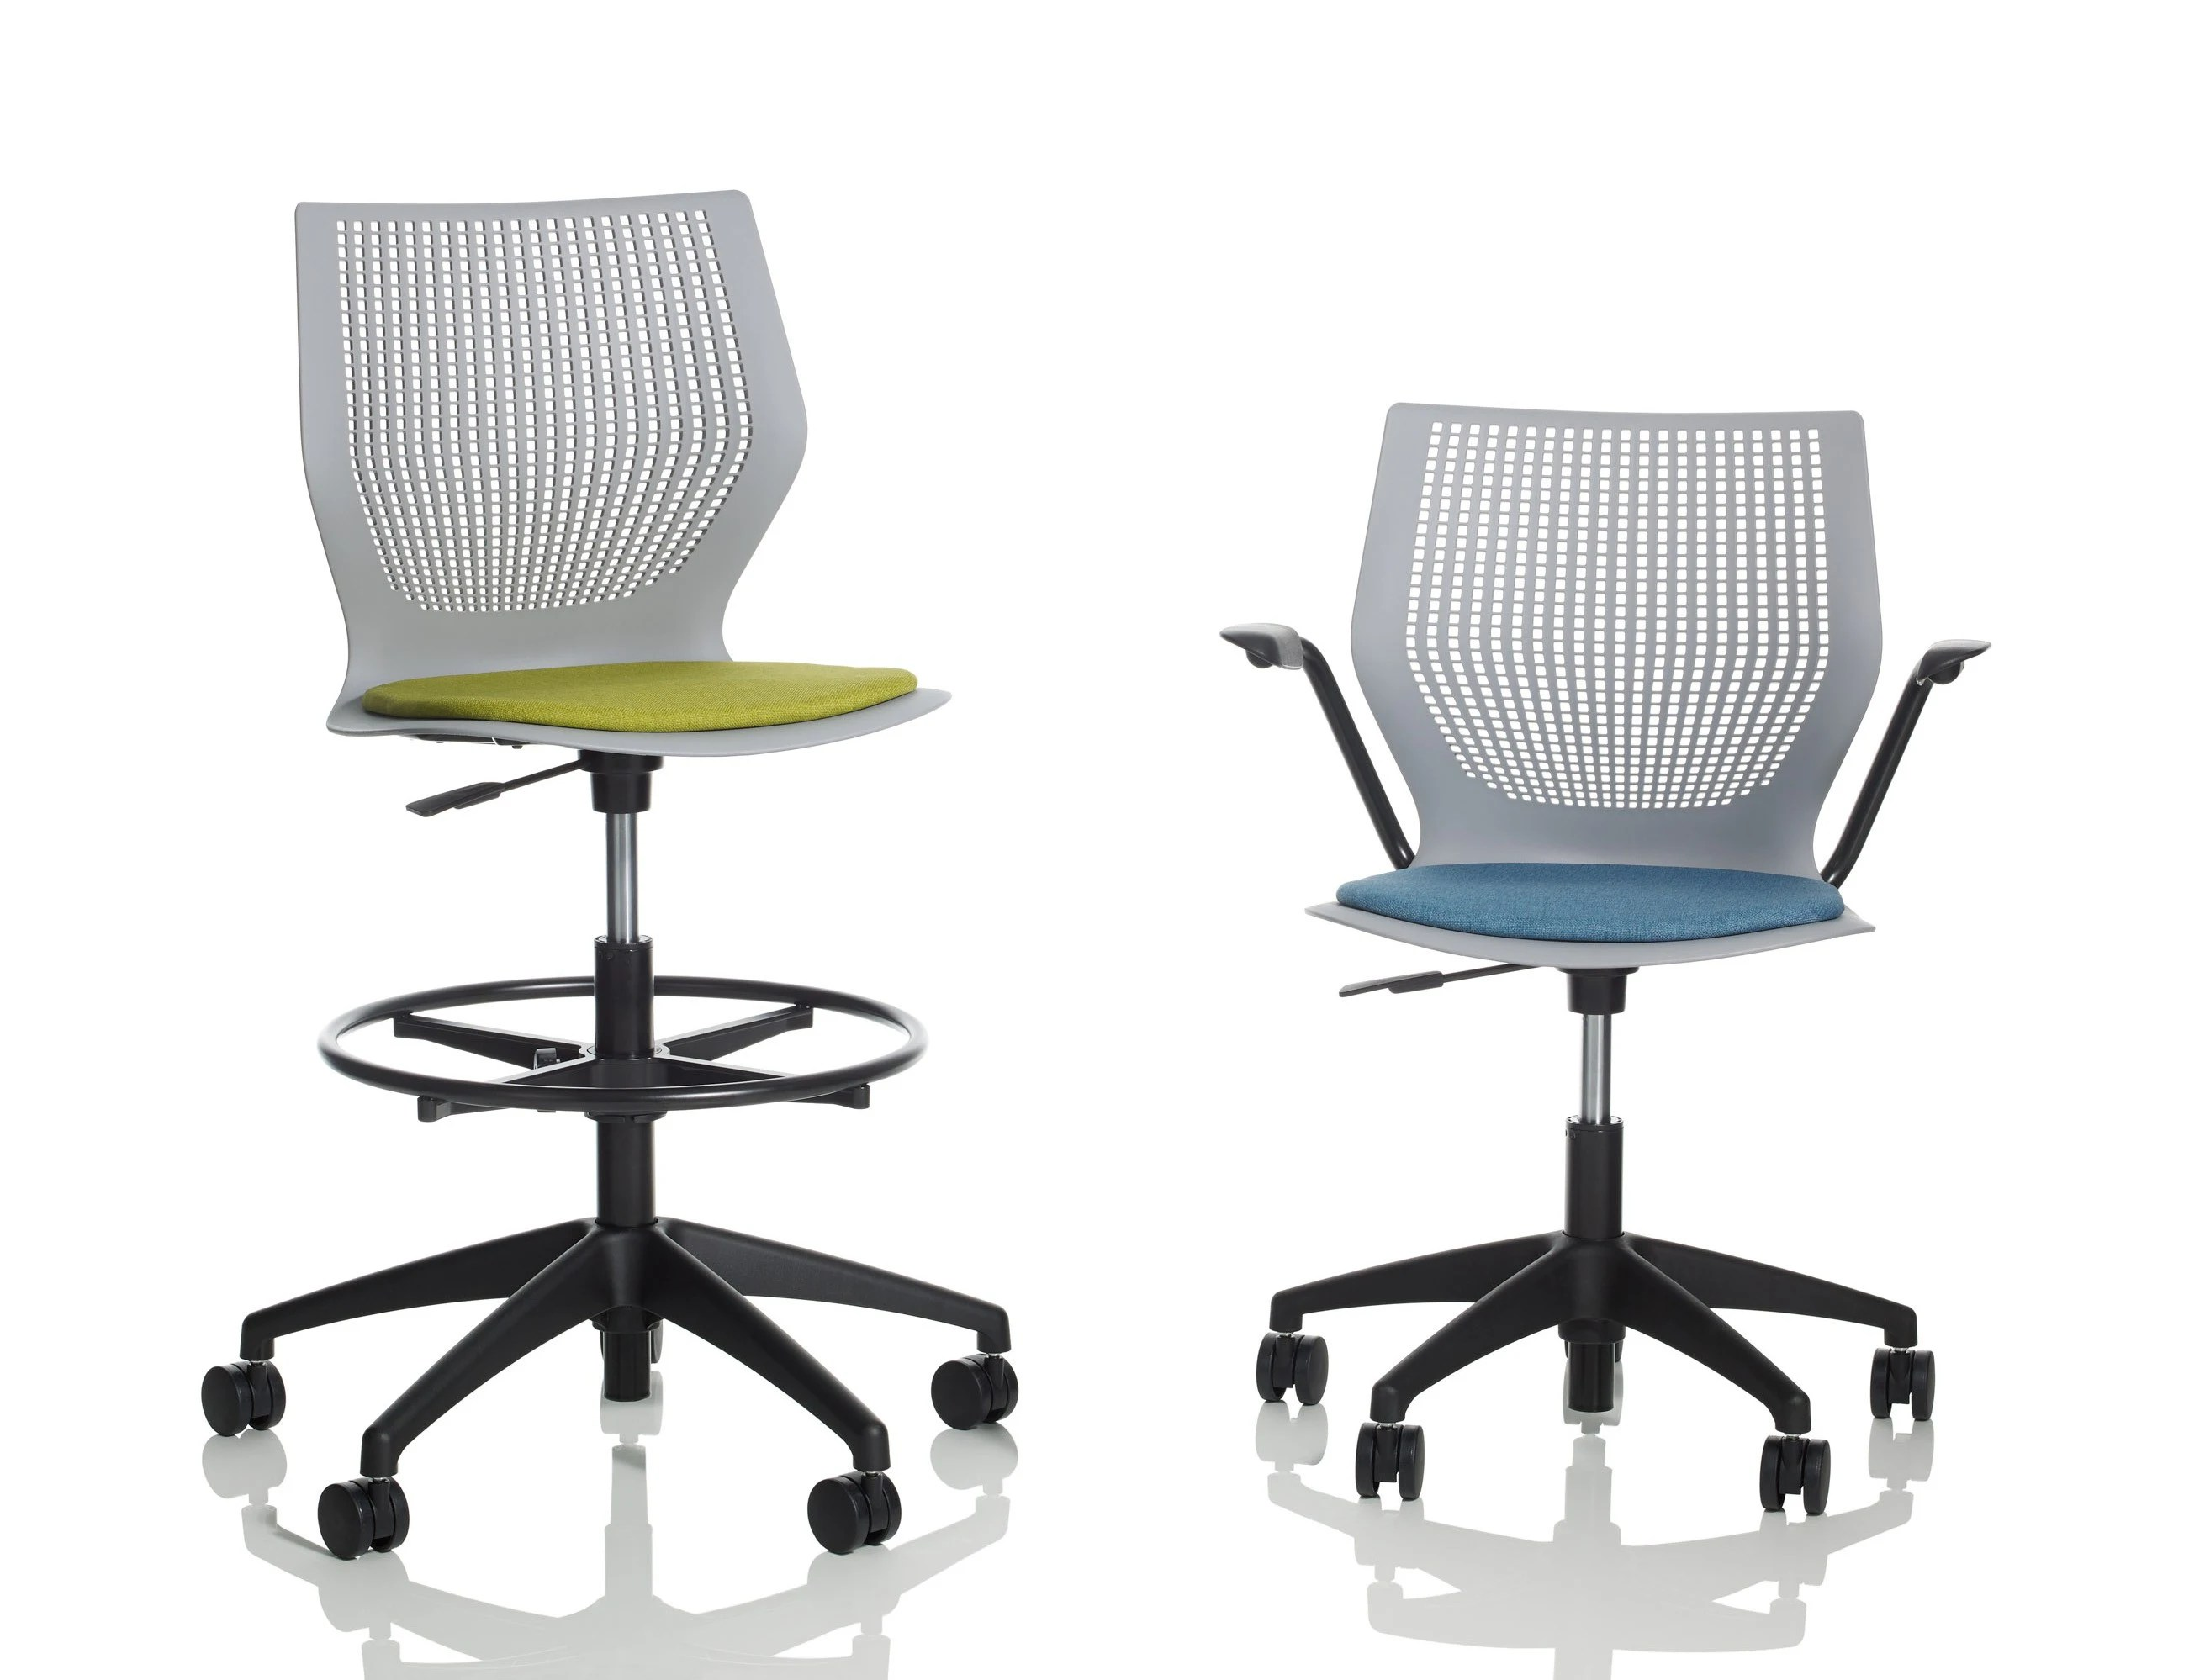 Knoll Chairs Amazon Chadwick High Task Chair Modern Task Chair Healthcare